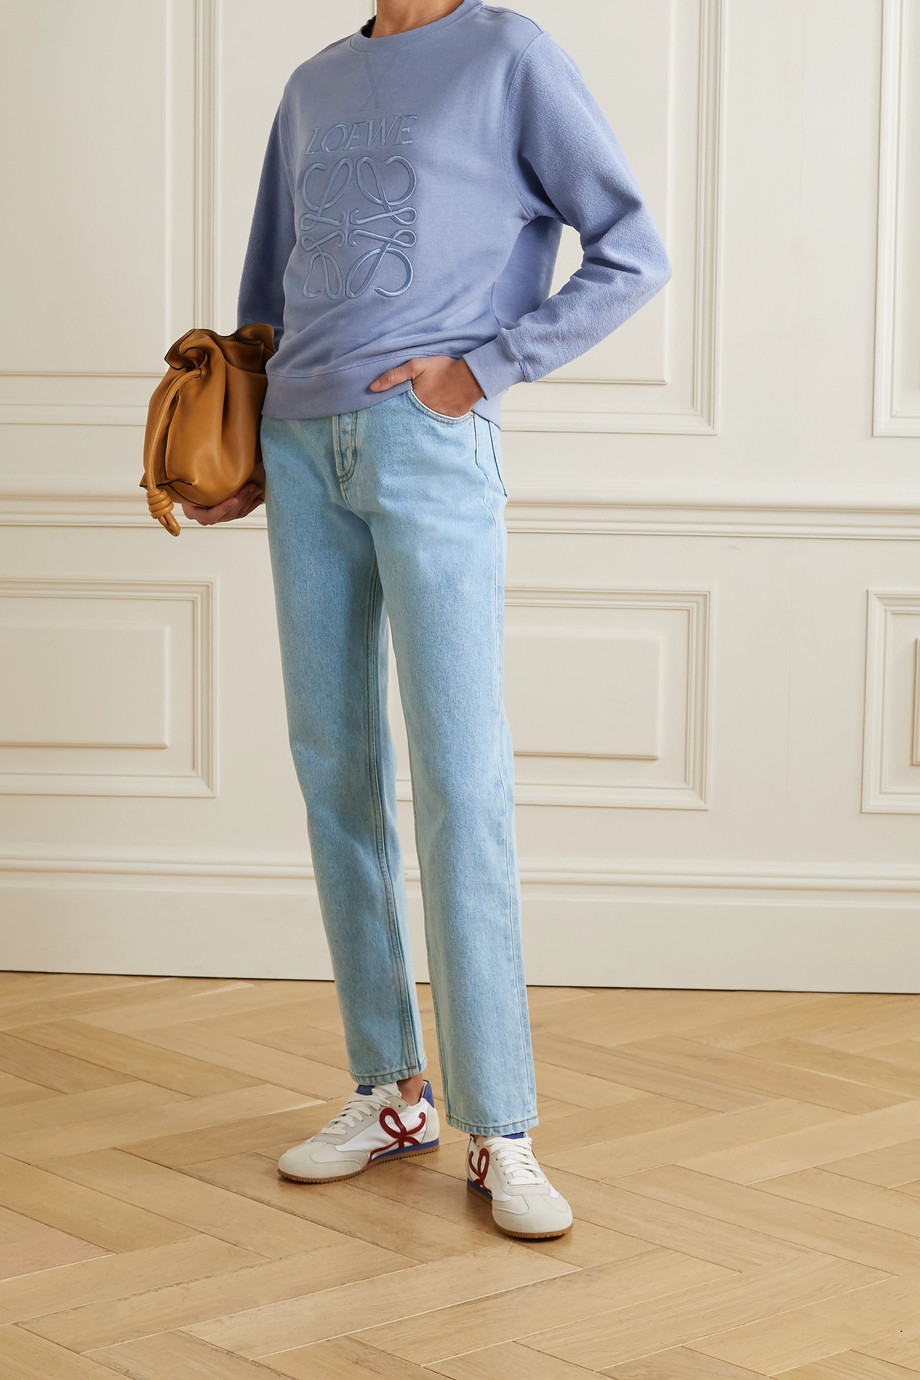 Loewe High-rise tapered jeans